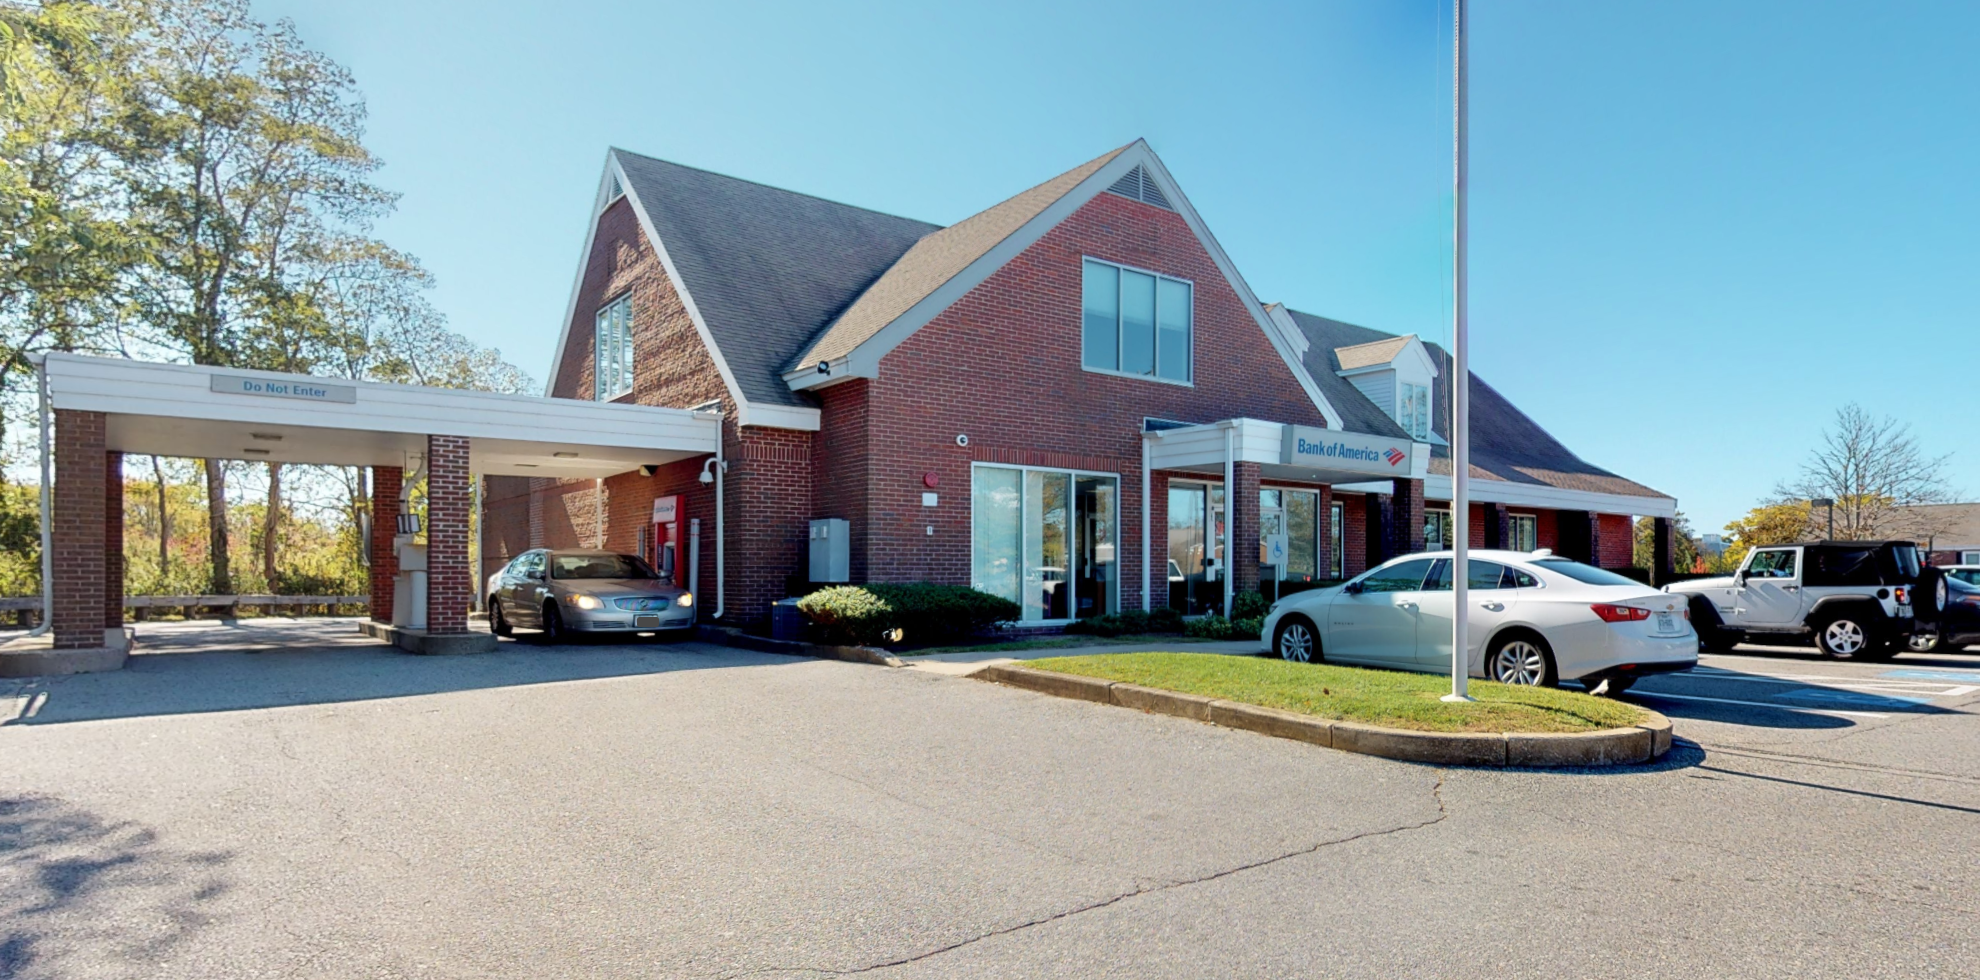 Bank of America financial center with drive-thru ATM and teller   749 Main St, Hyannis, MA 02601